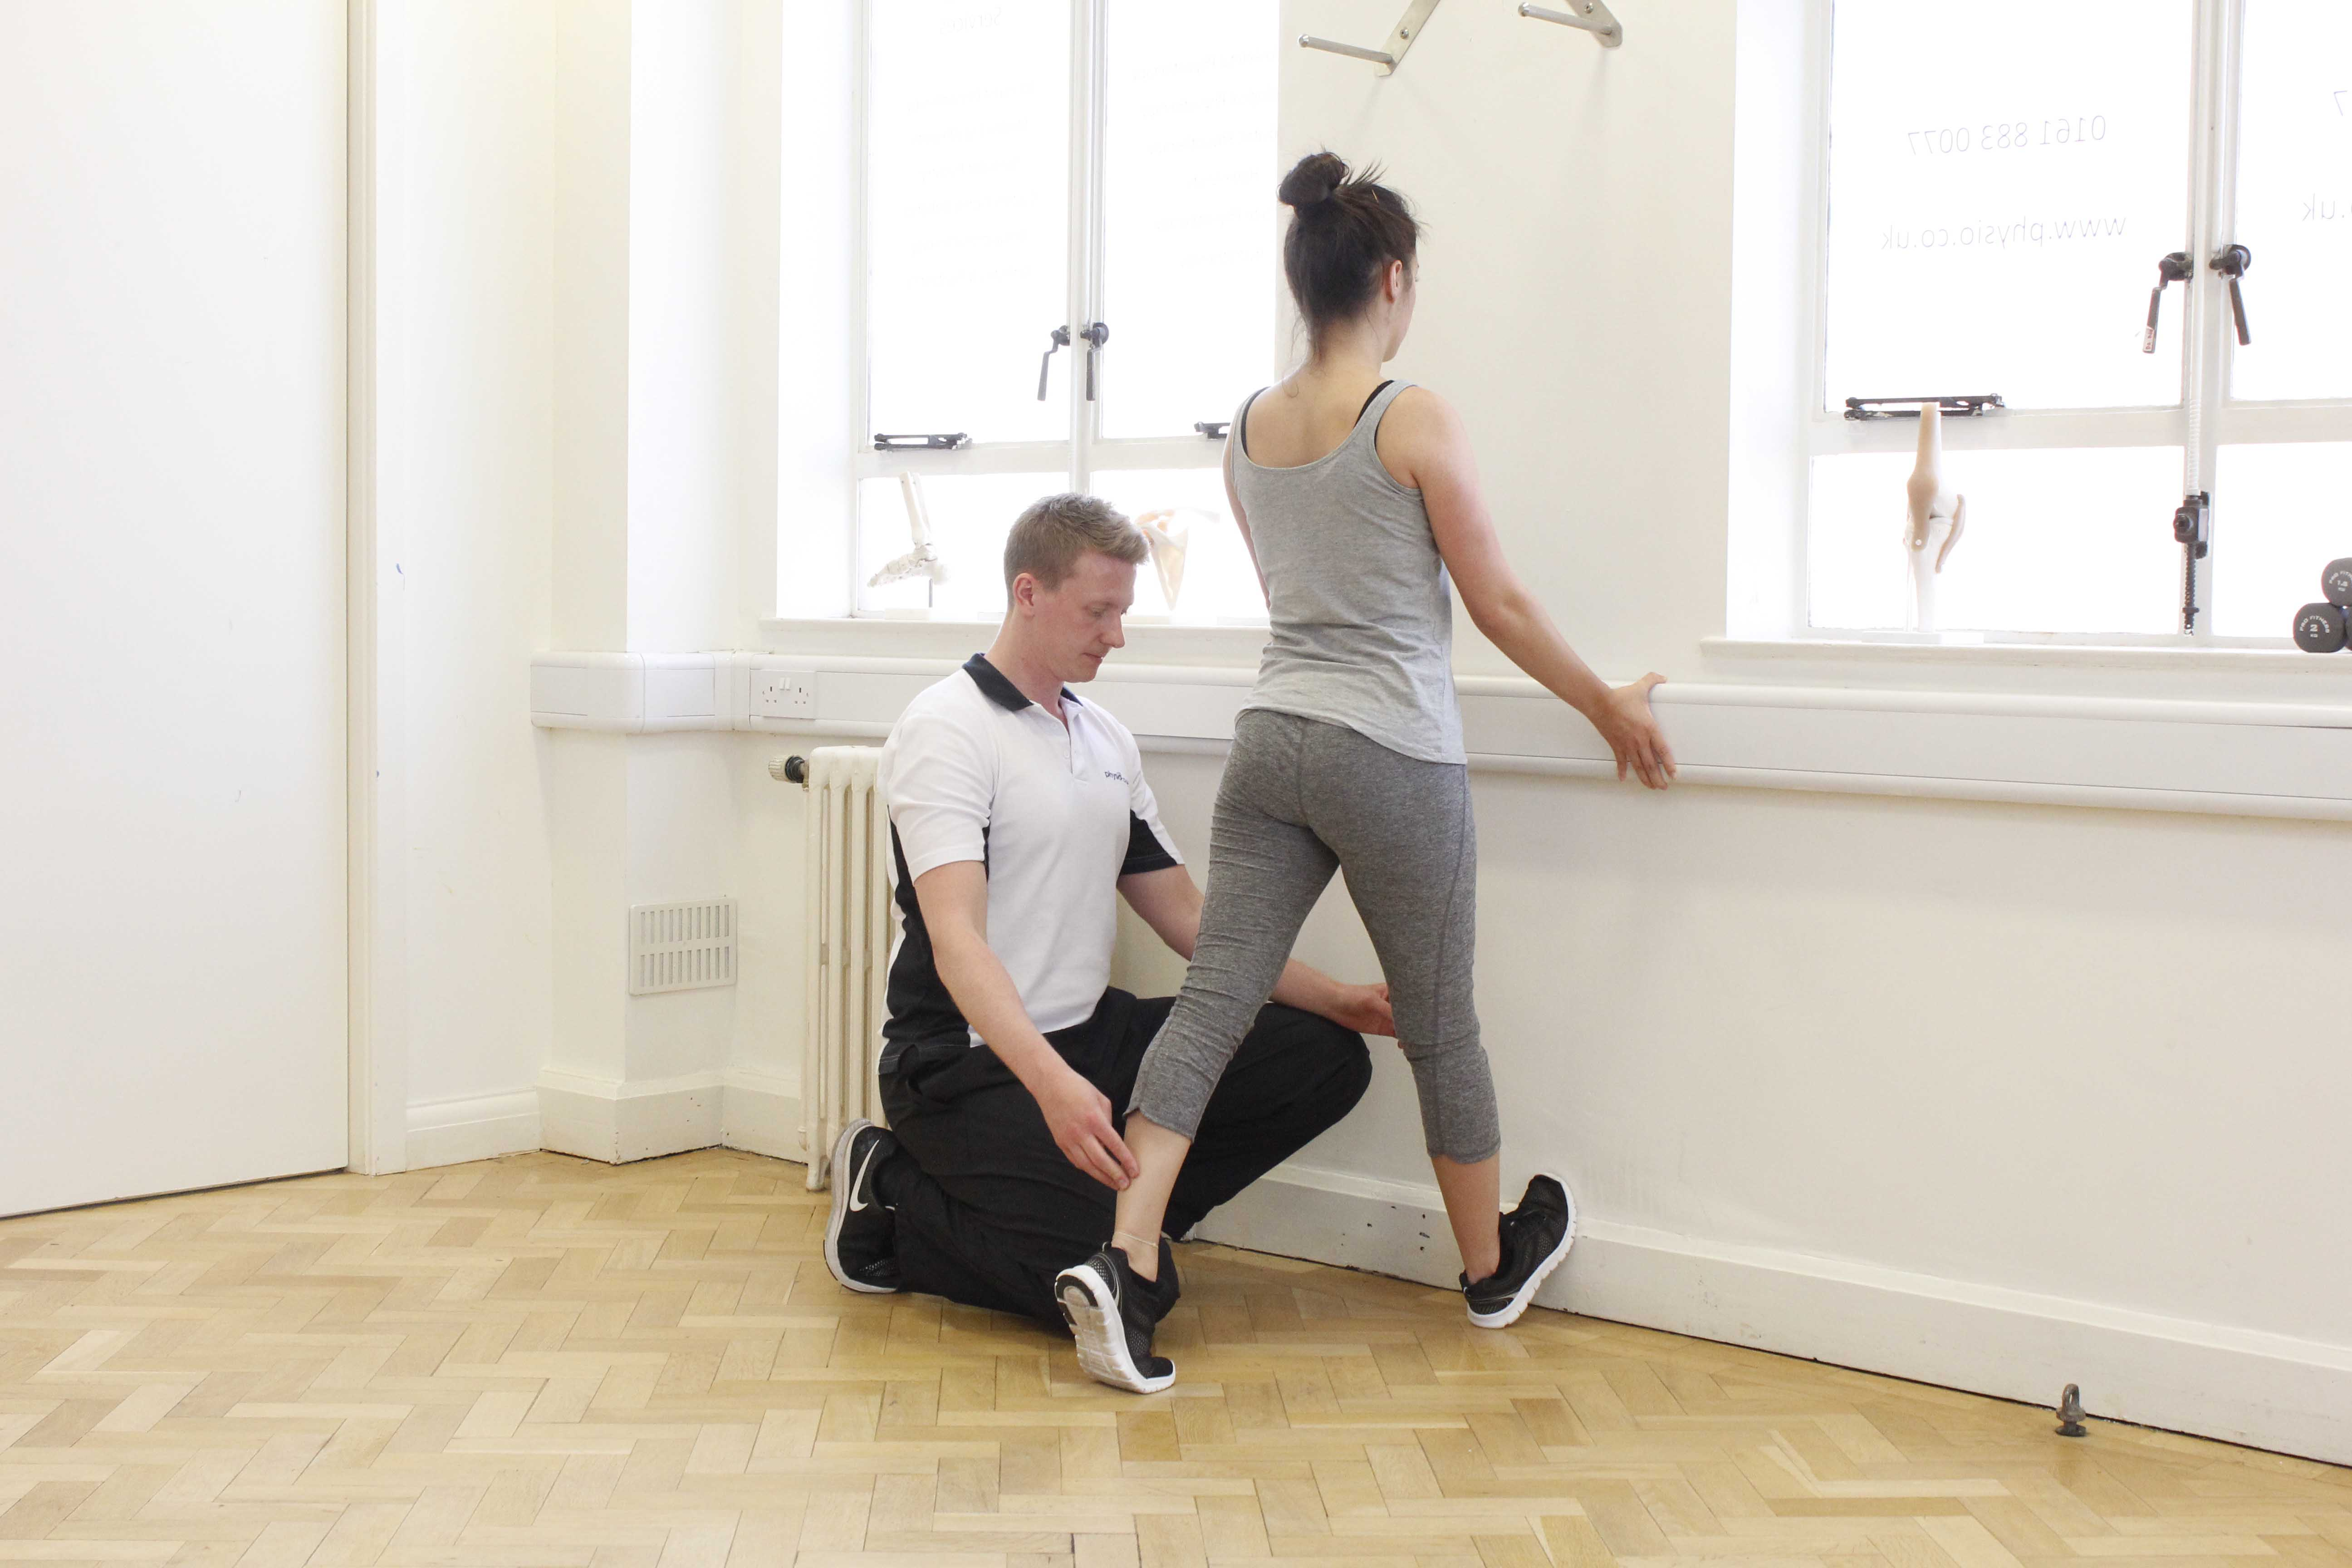 mobilisations and stretches of the arm and shoulder by an experienced physiotherapist